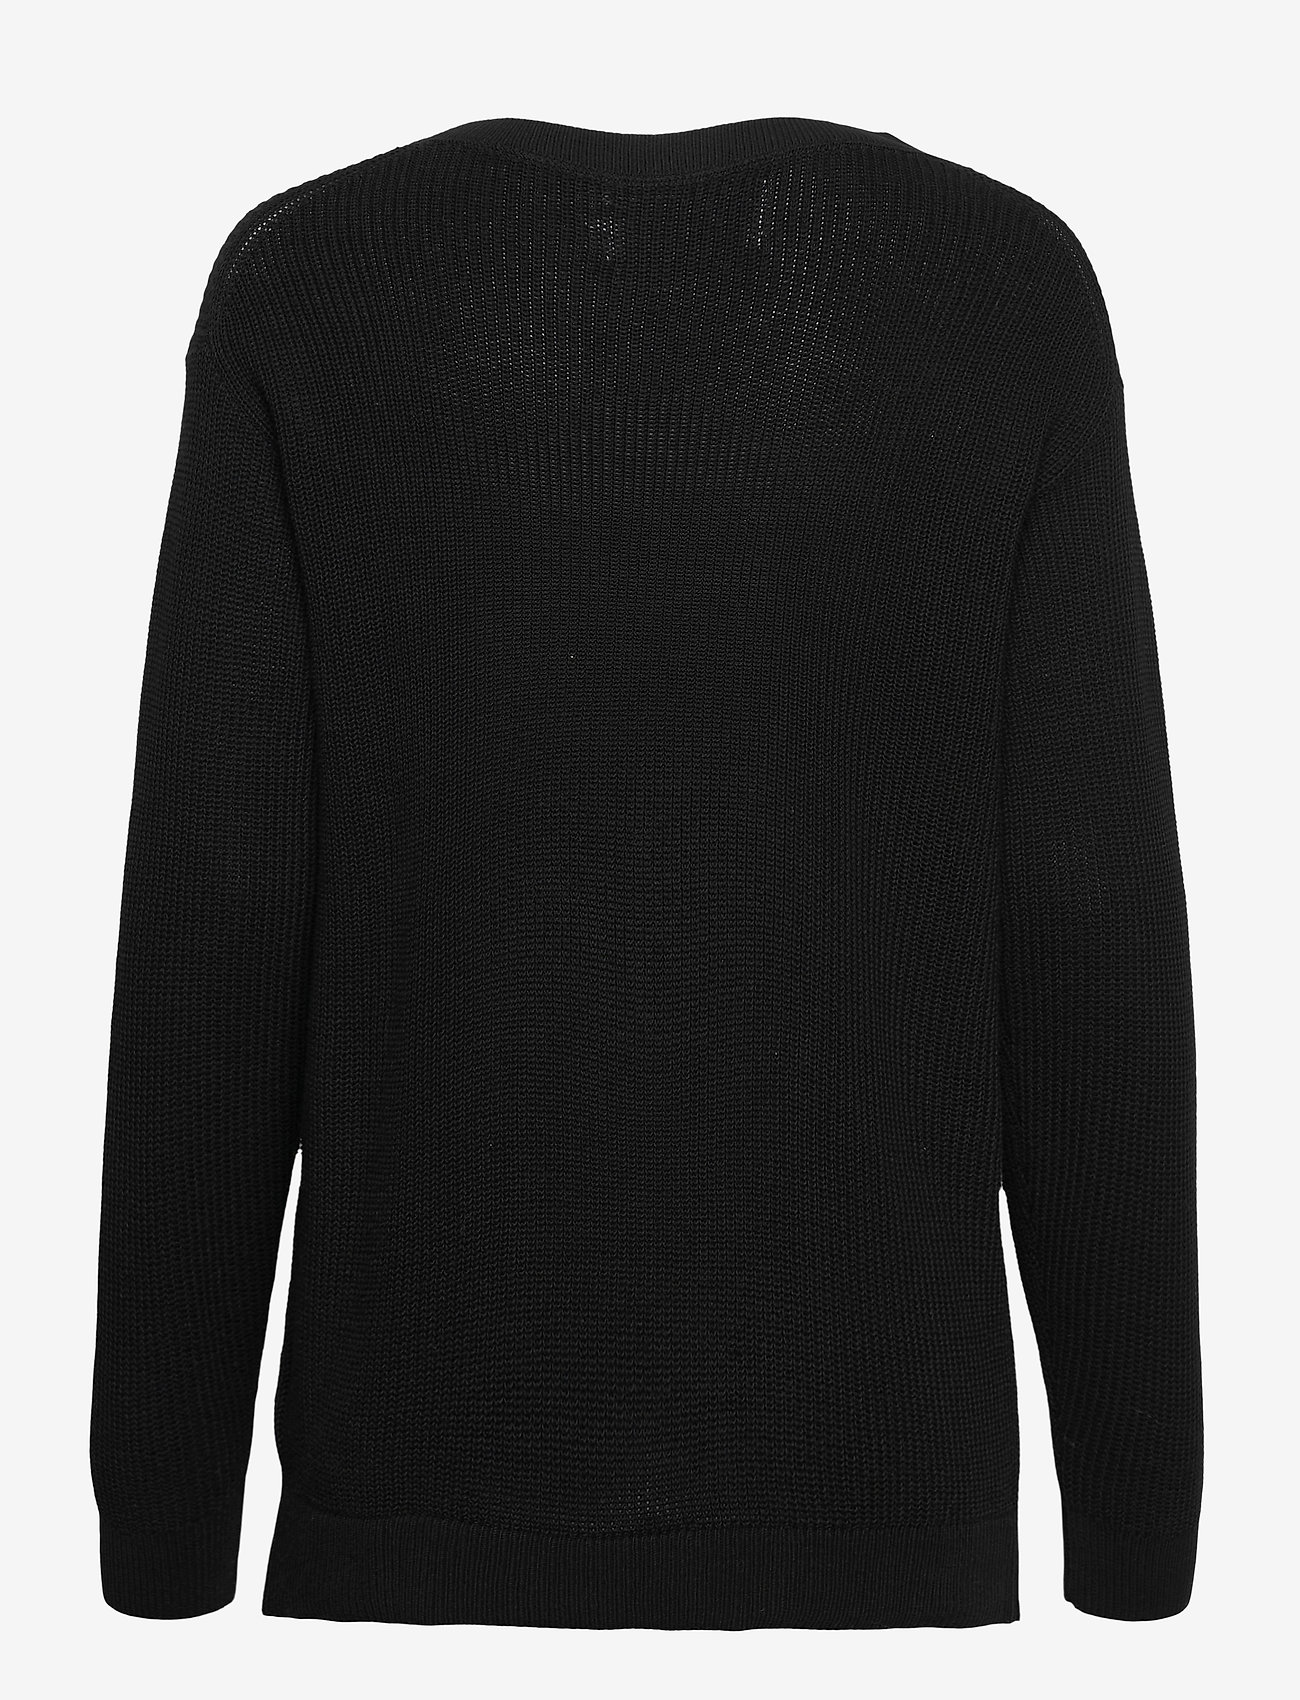 Calvin Klein Jeans - SLICED CK OVERSIZED SWEATER - gensere - ck black - 1